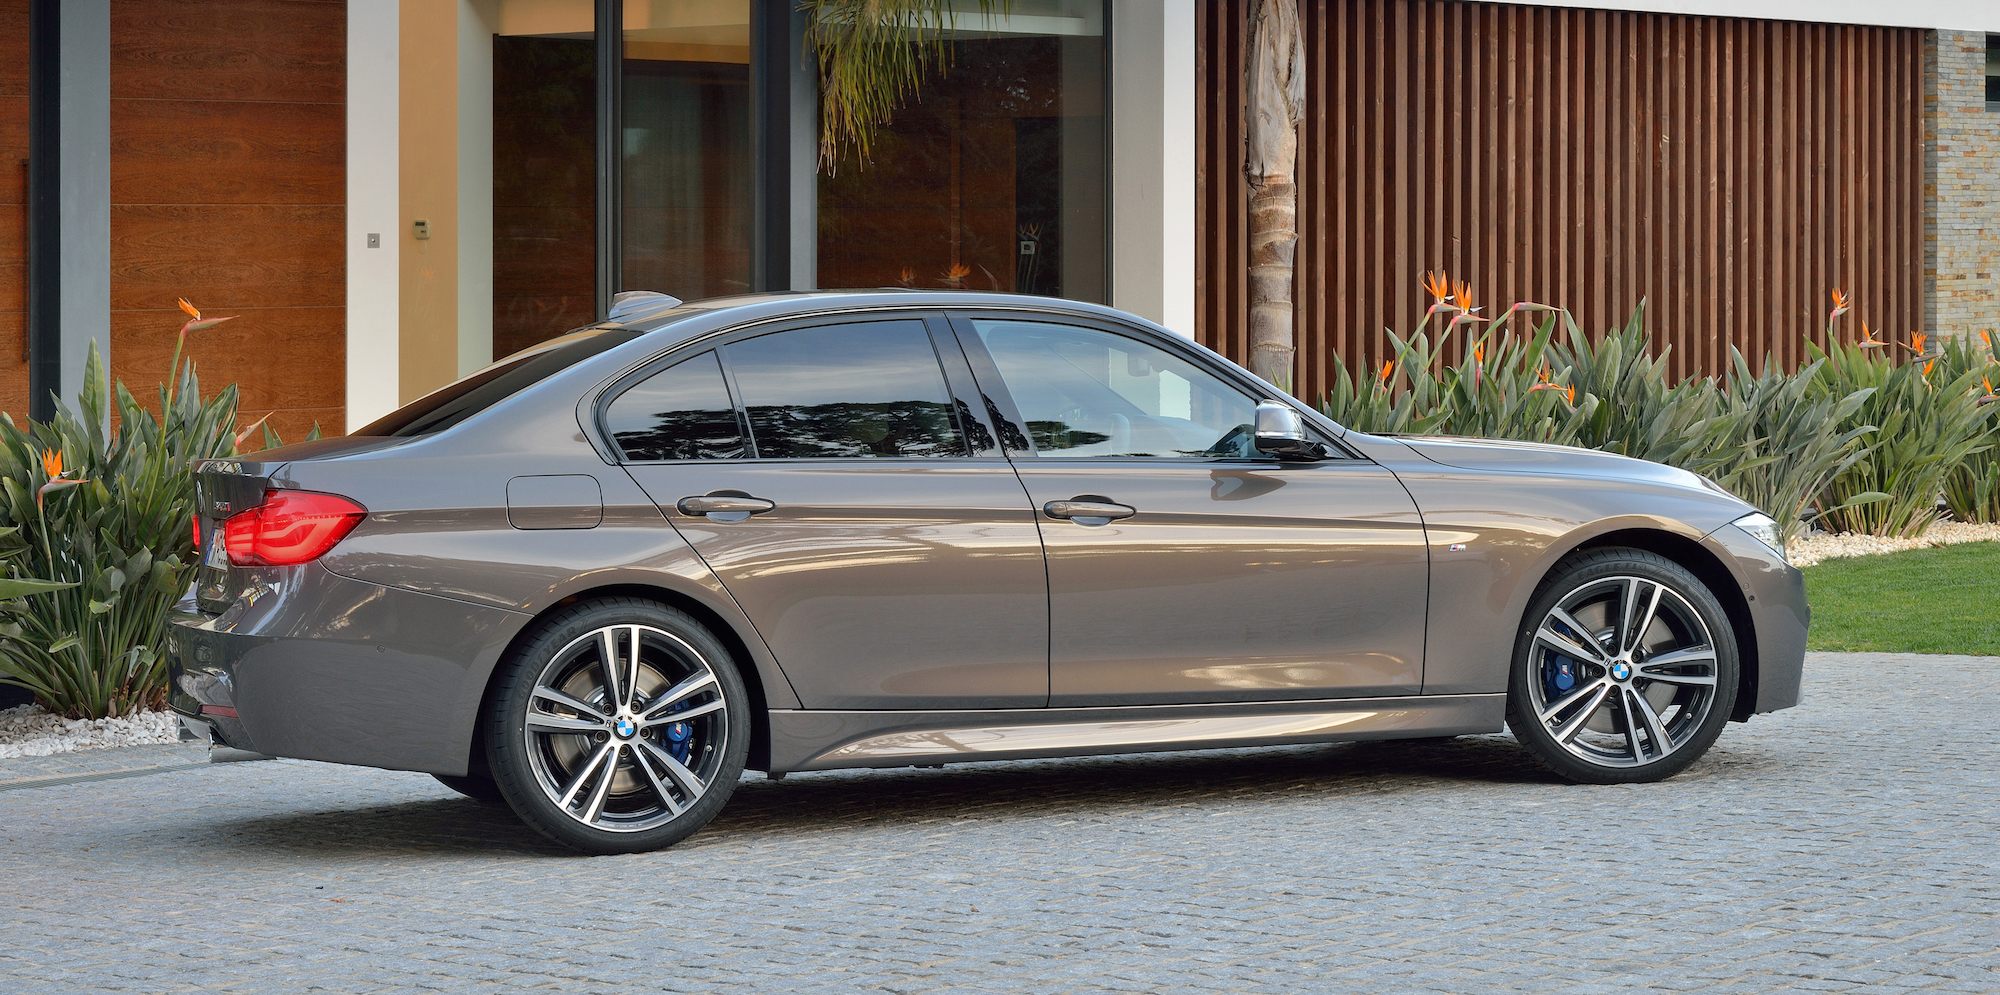 2016 Bmw 3 Series Pricing And Specifications Caradvice